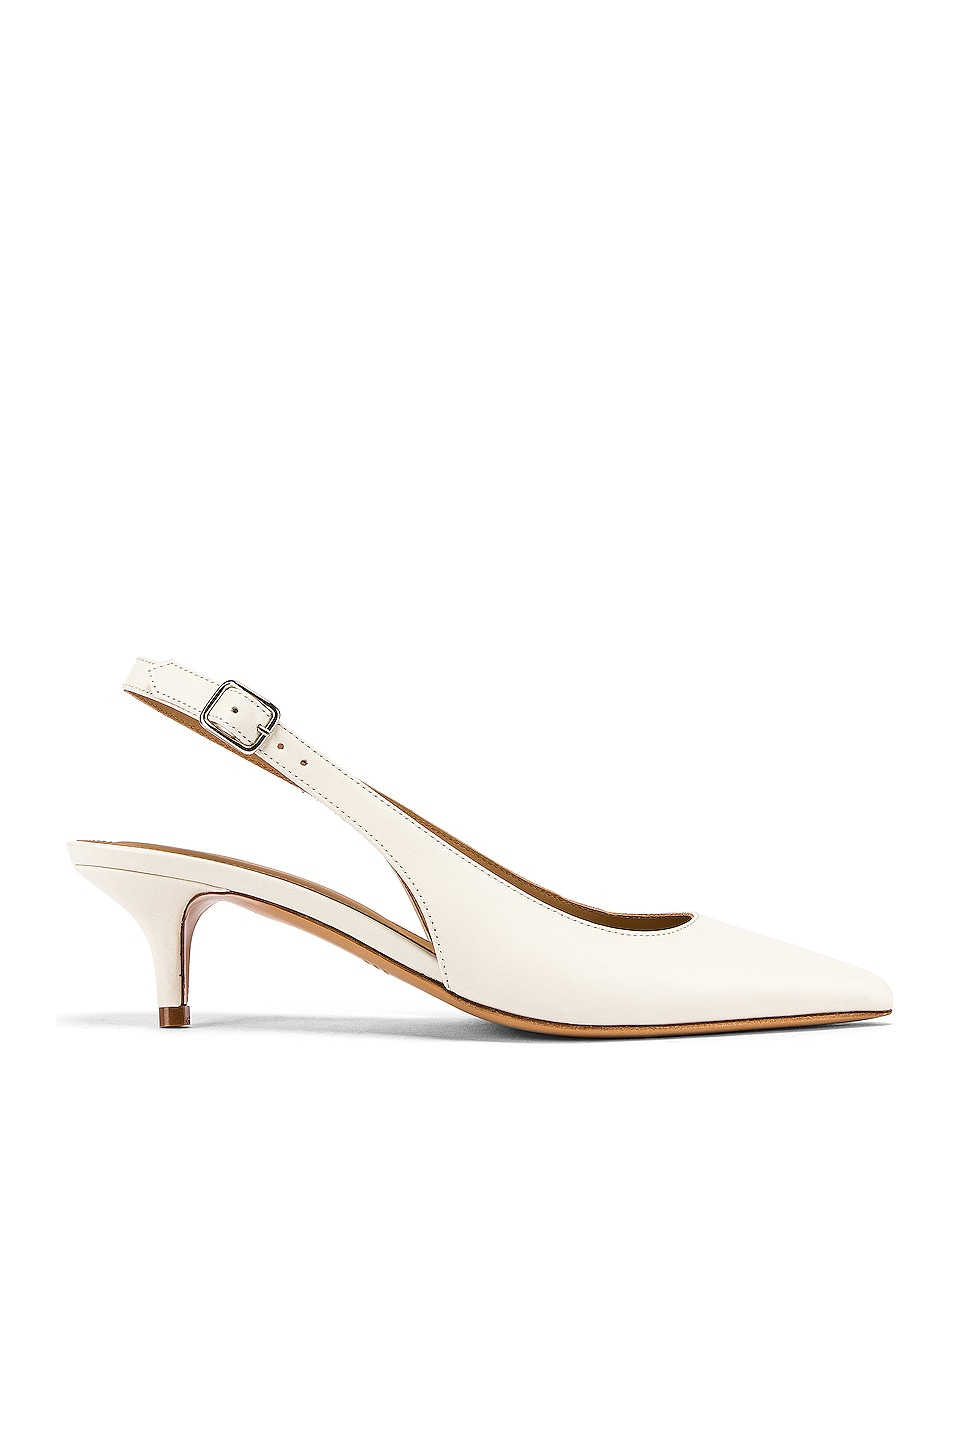 A.P.C. Chaussures Island Sling Back in Blanc